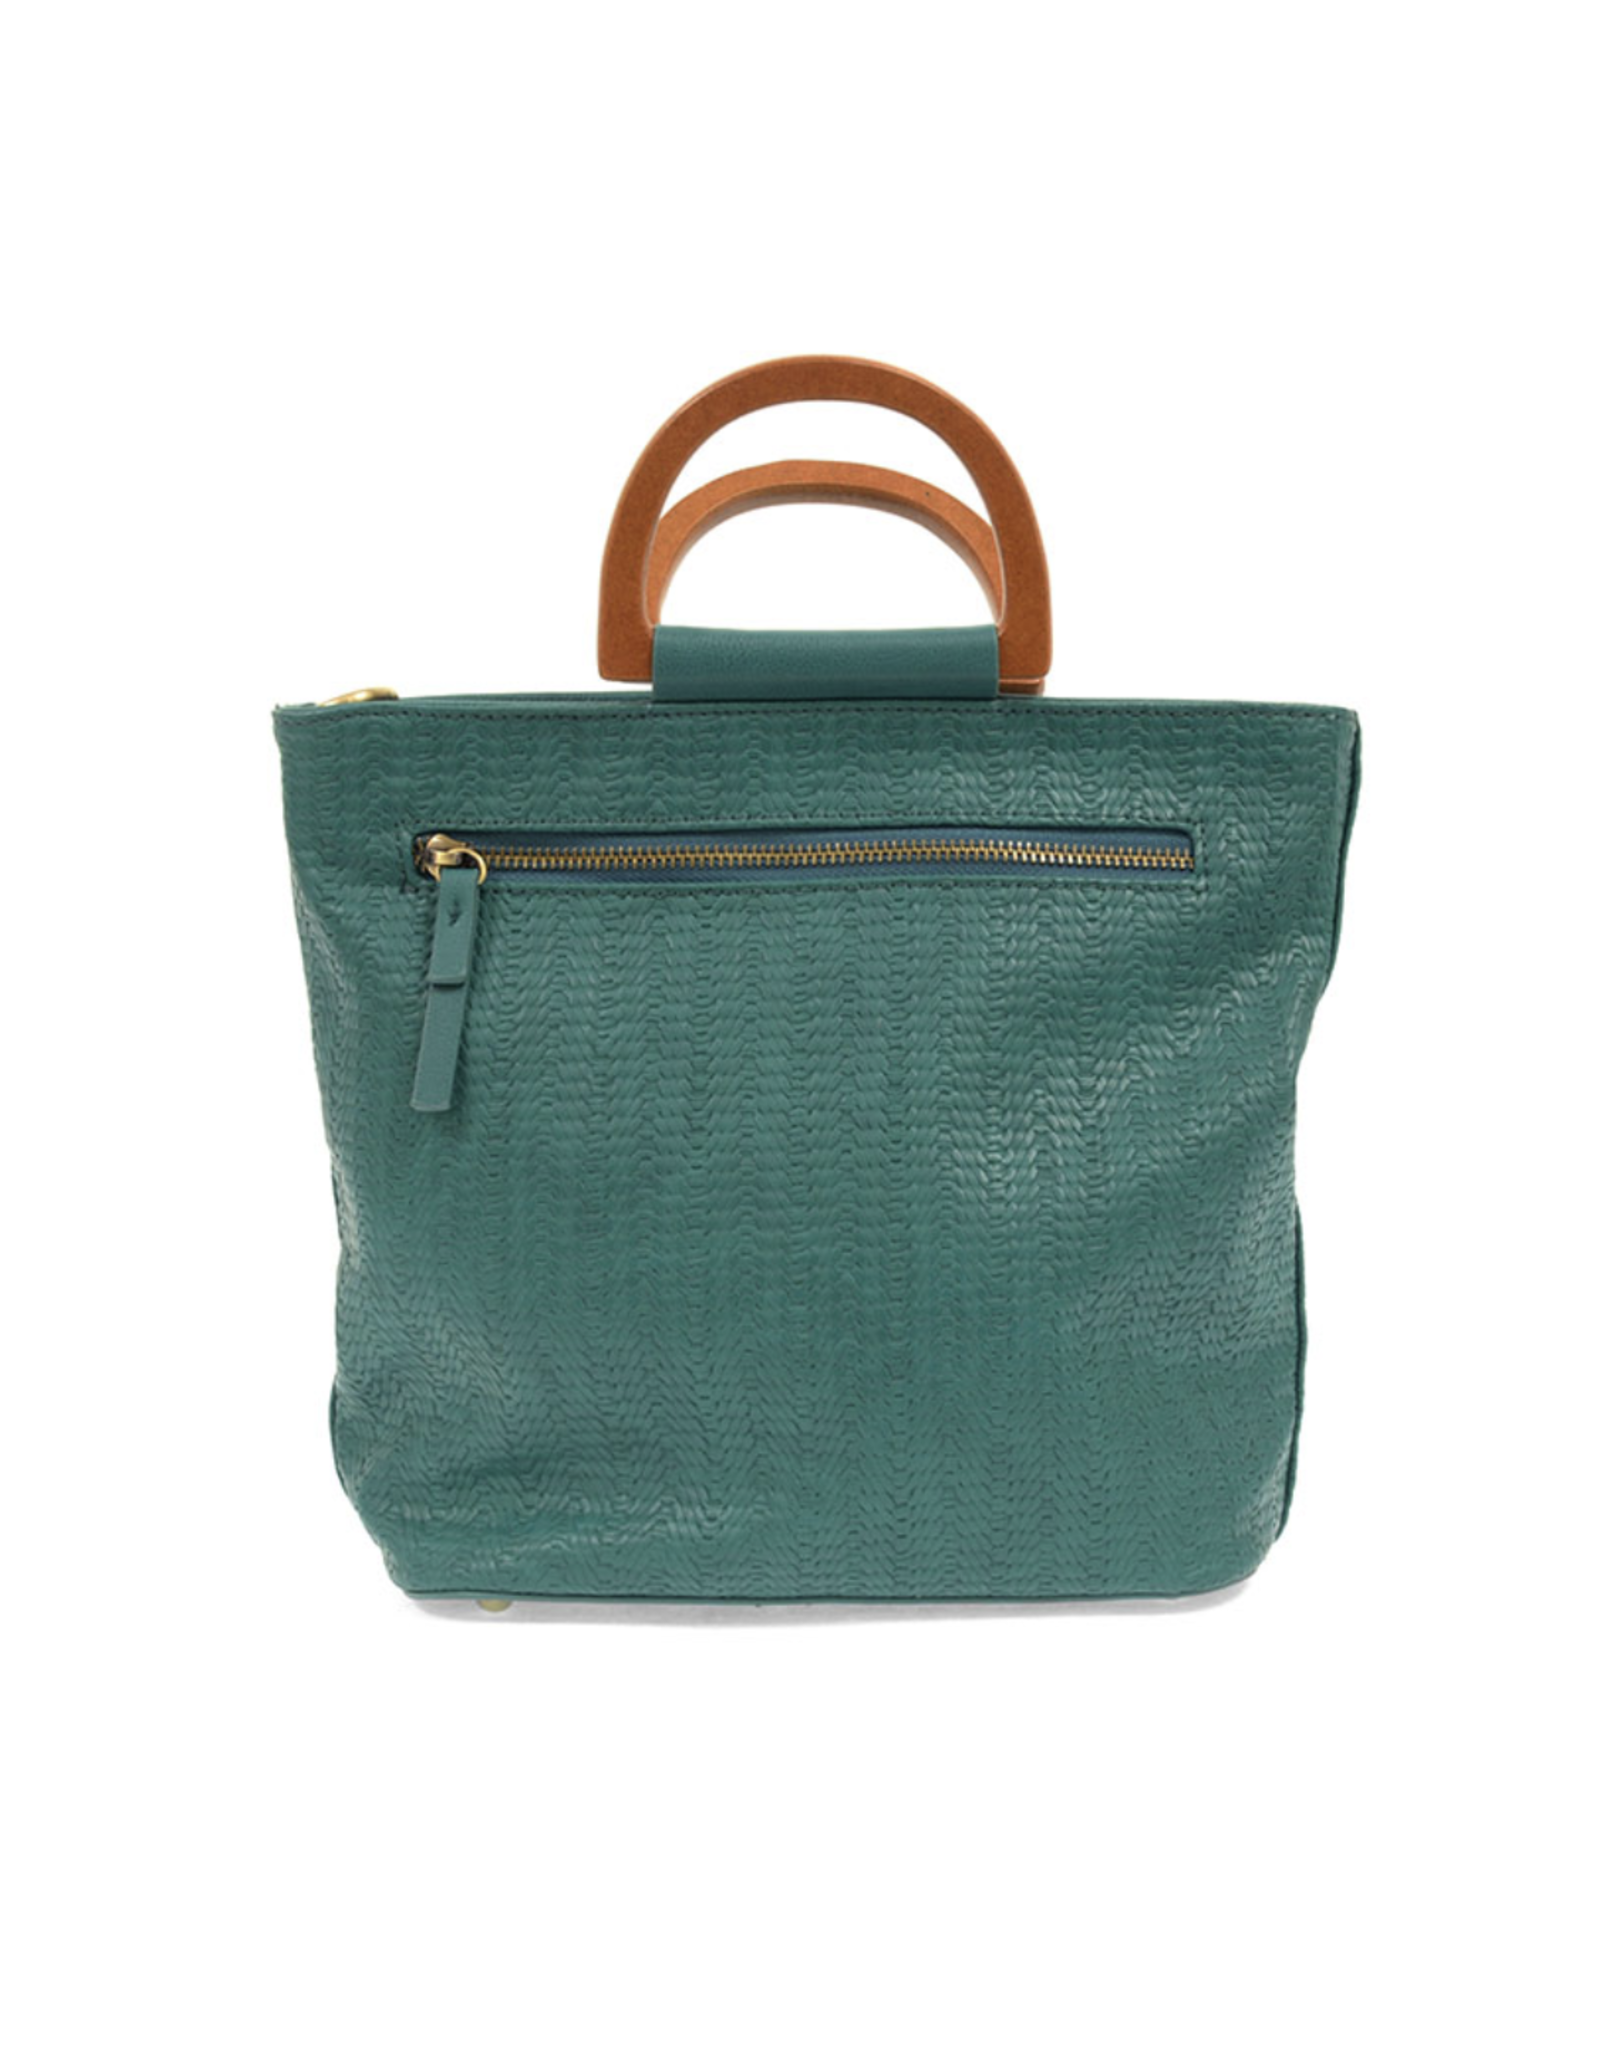 Lily Woven Wooden Handle Tote : Turquoise